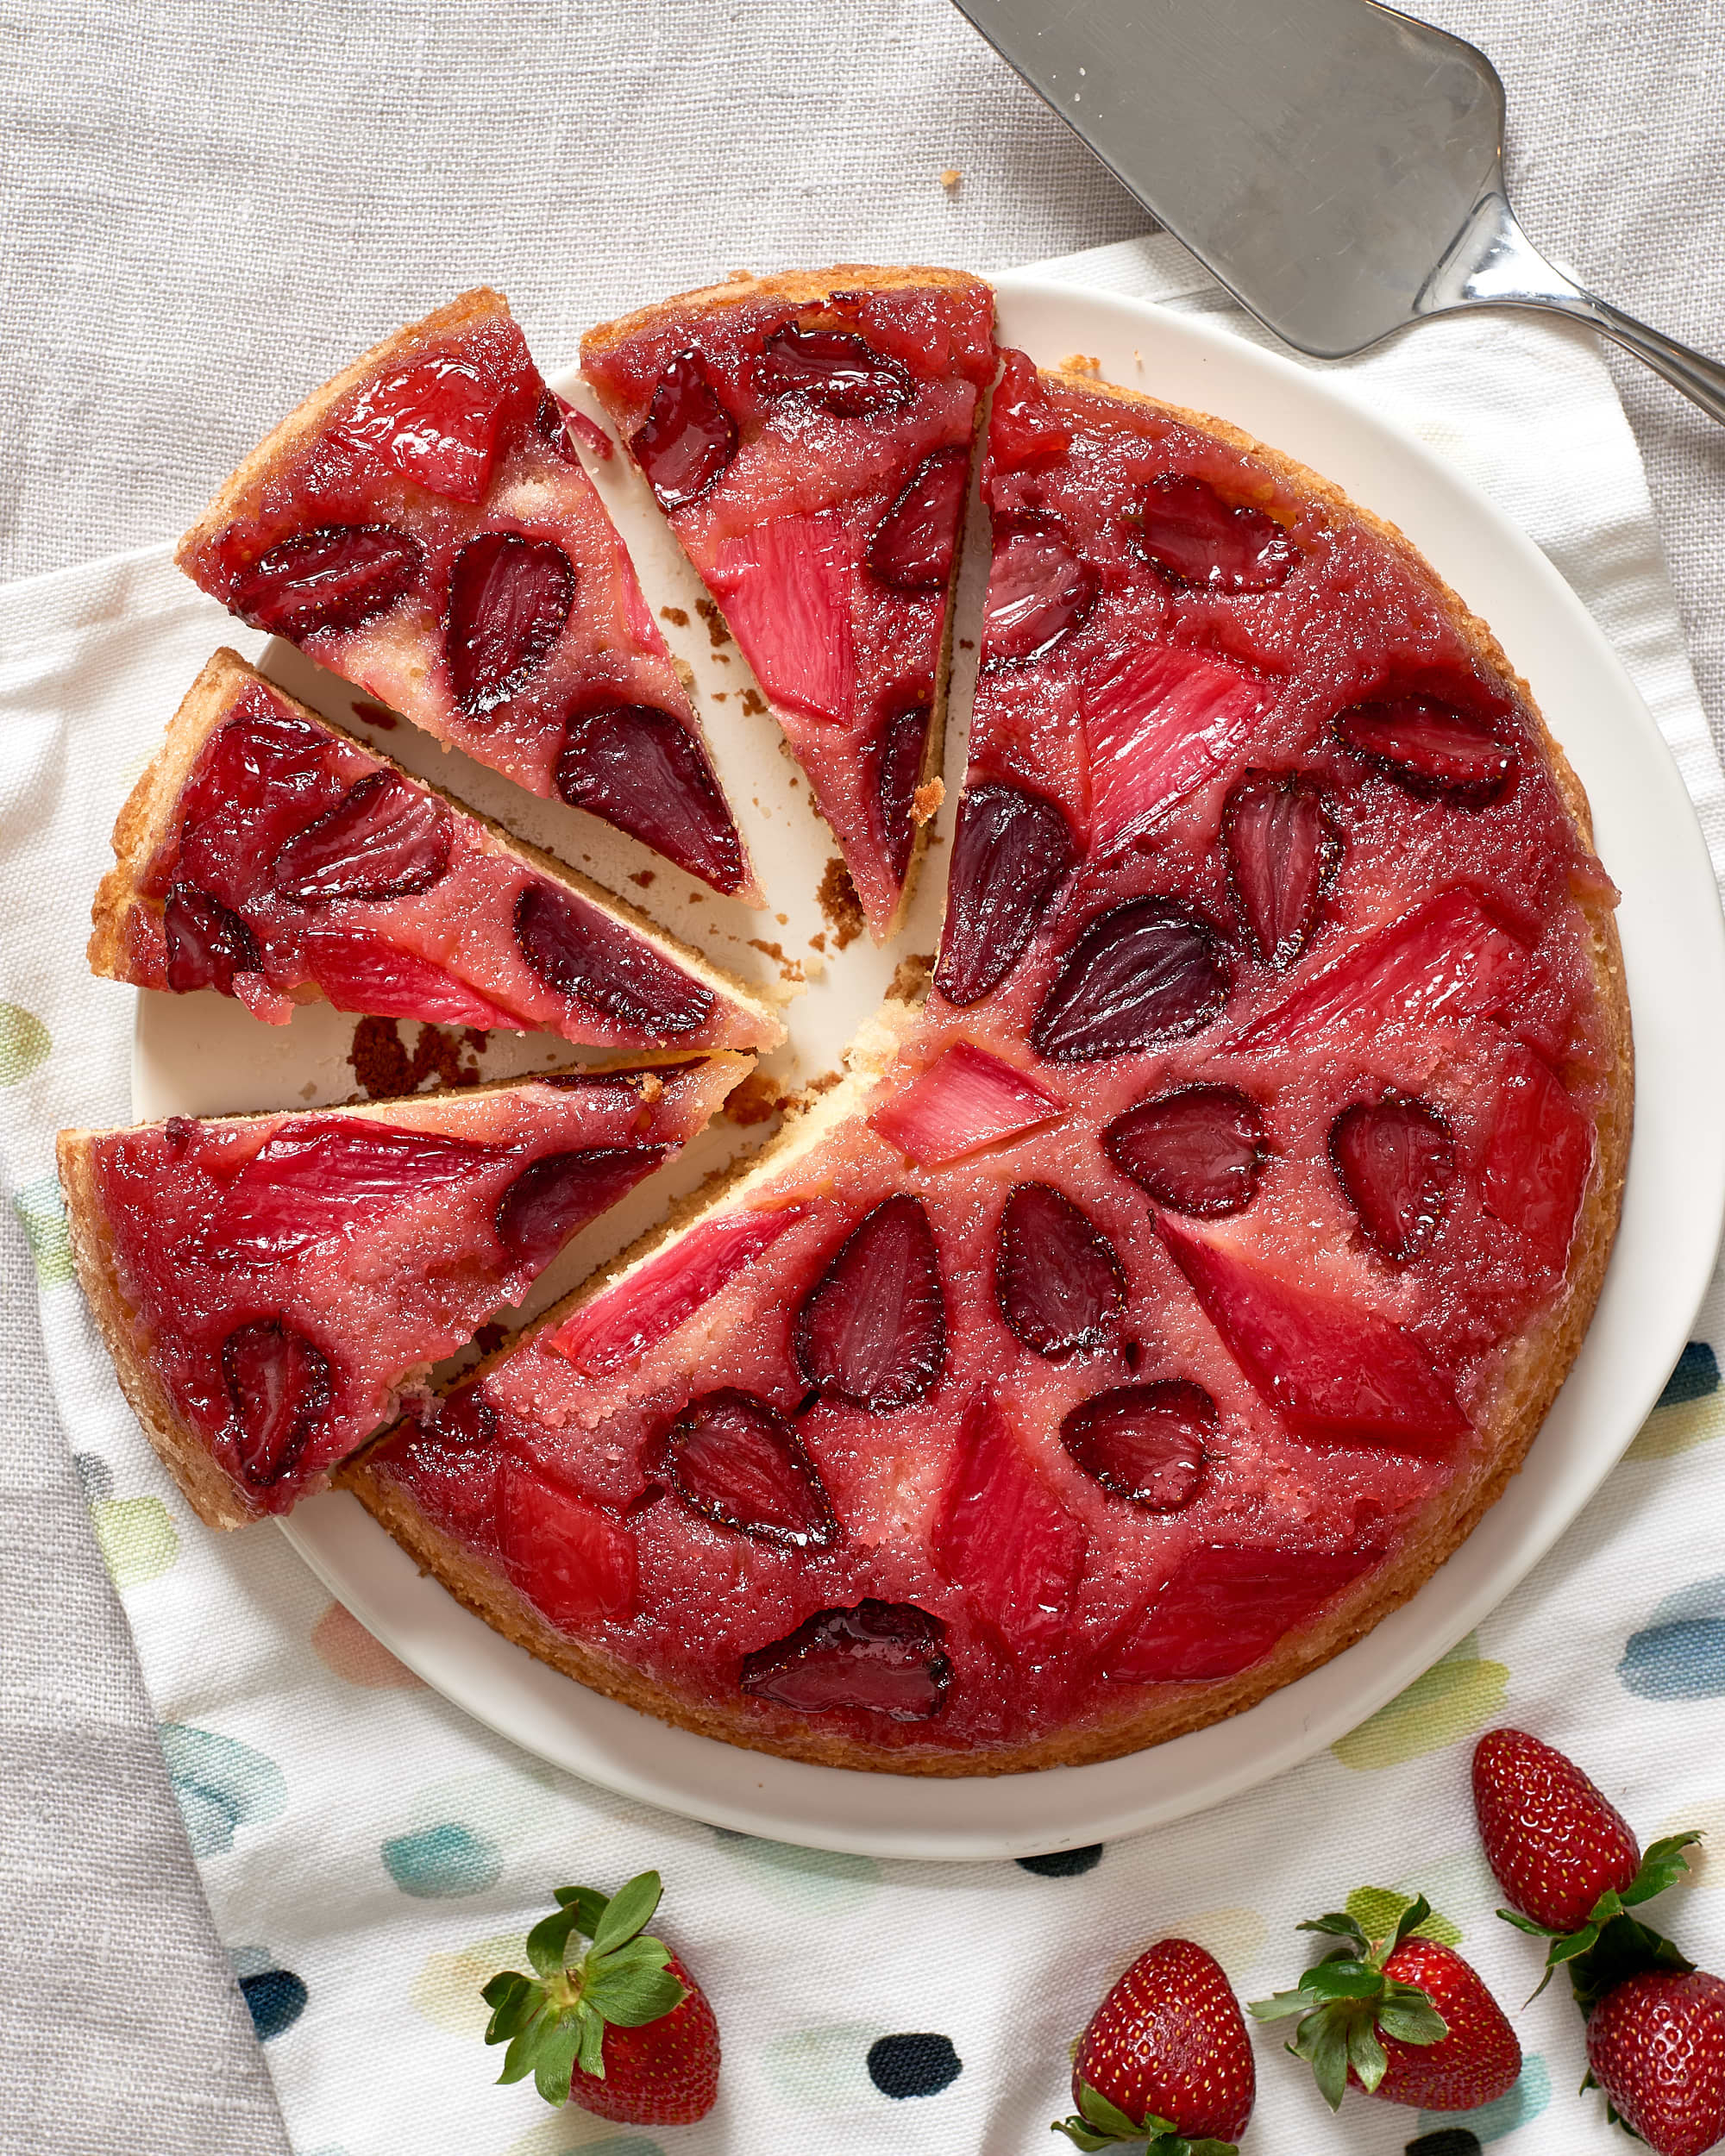 How To Make an Upside-Down Cake with Almost Any Fruit: gallery image 13